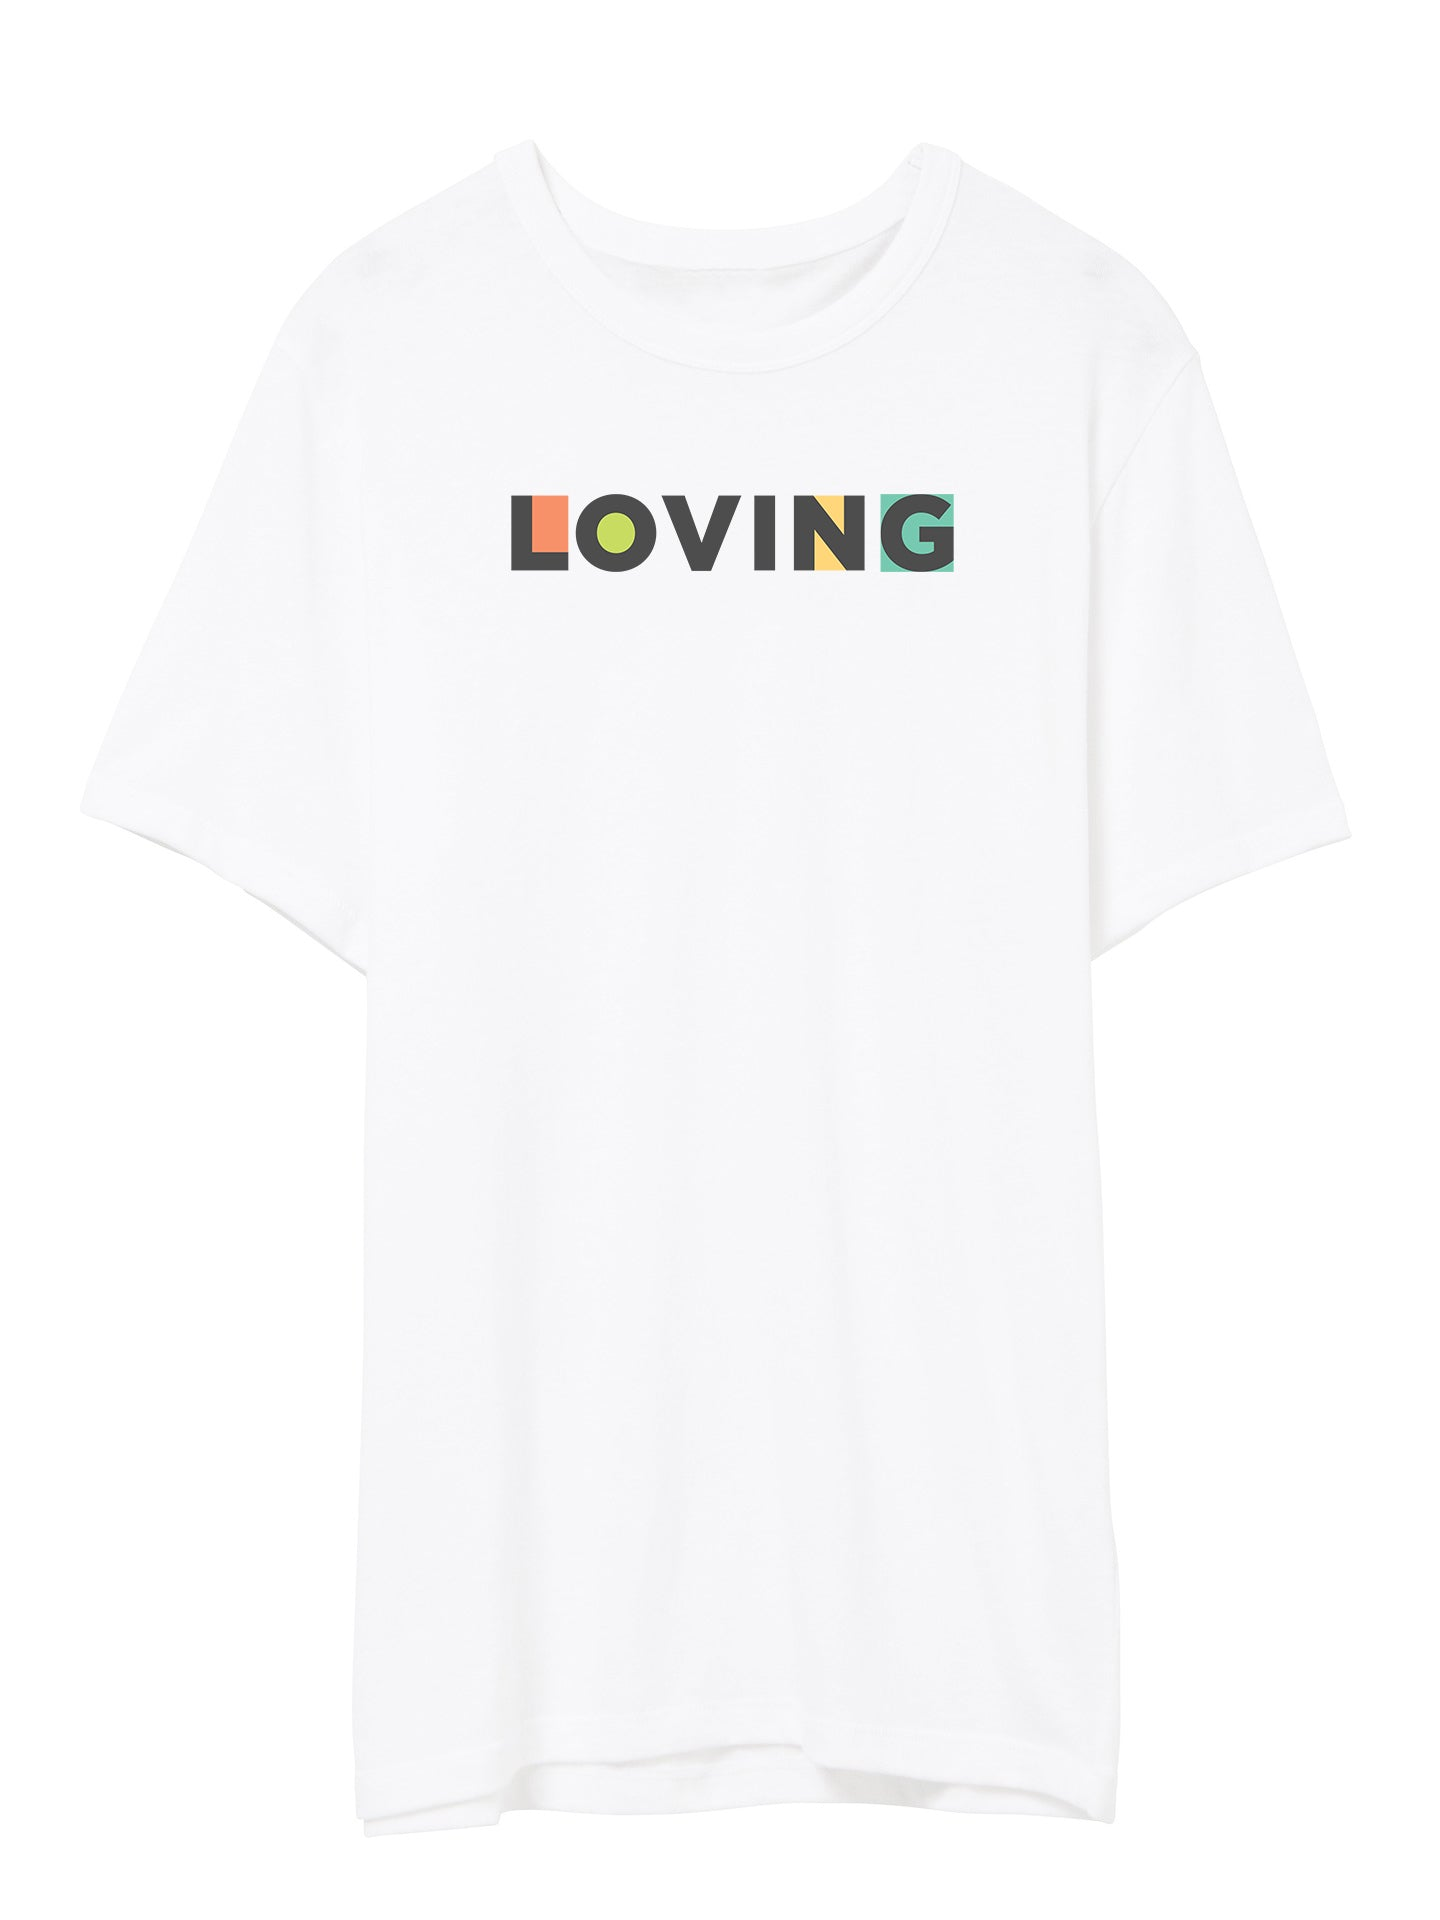 The Power of Words - Men's Tee - LOVING